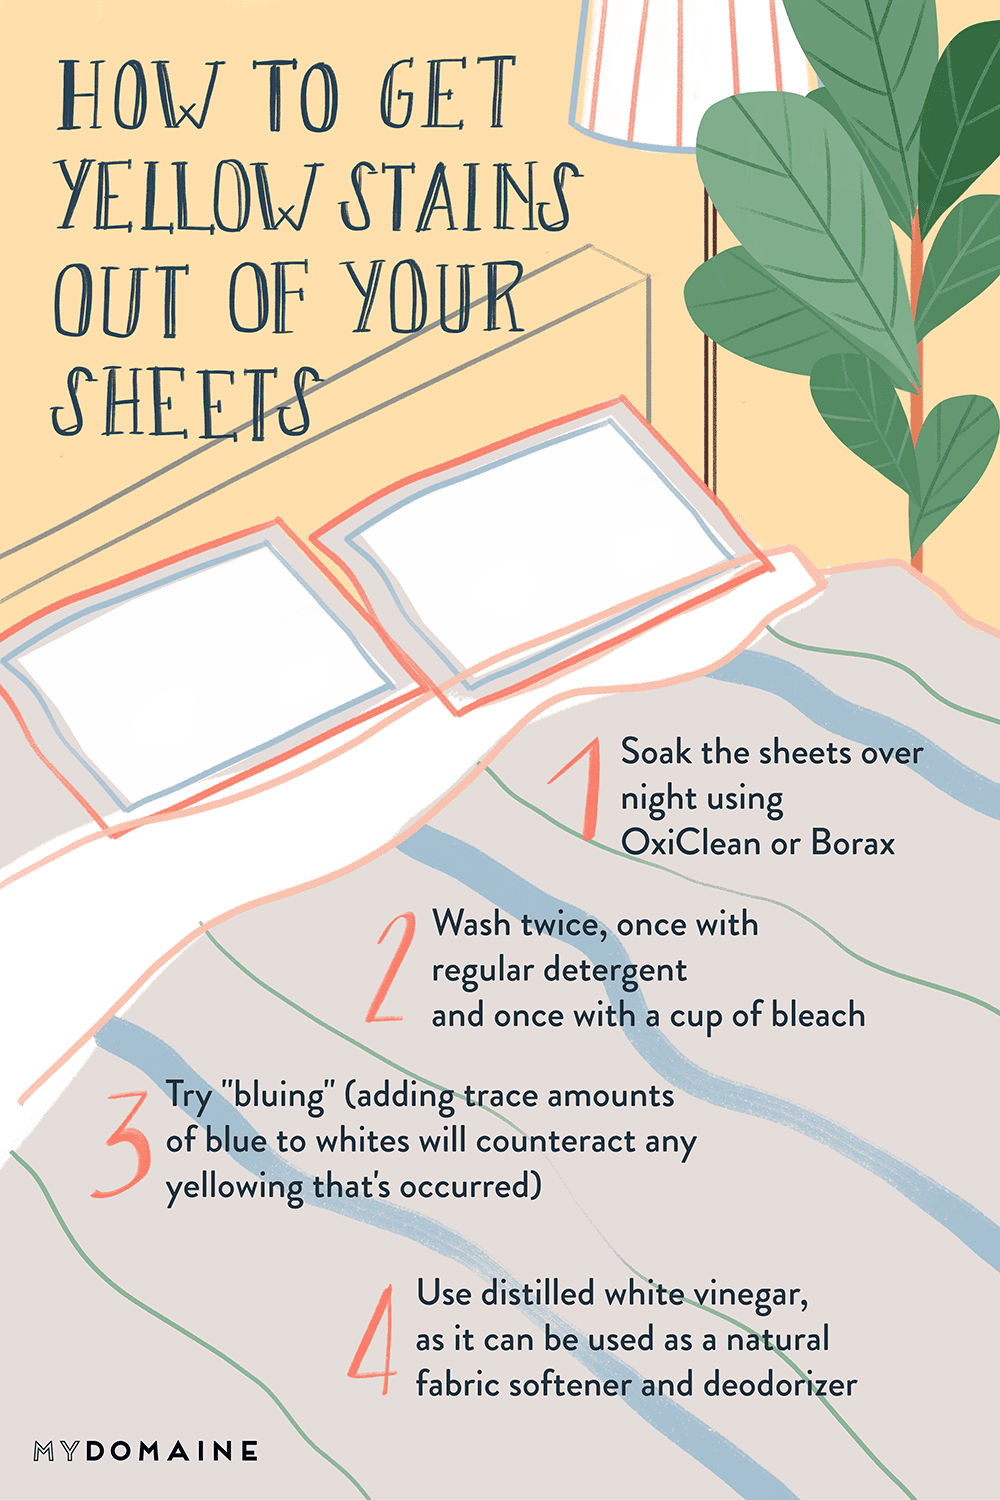 How to Get Yellow Stains Out of Your Sheets